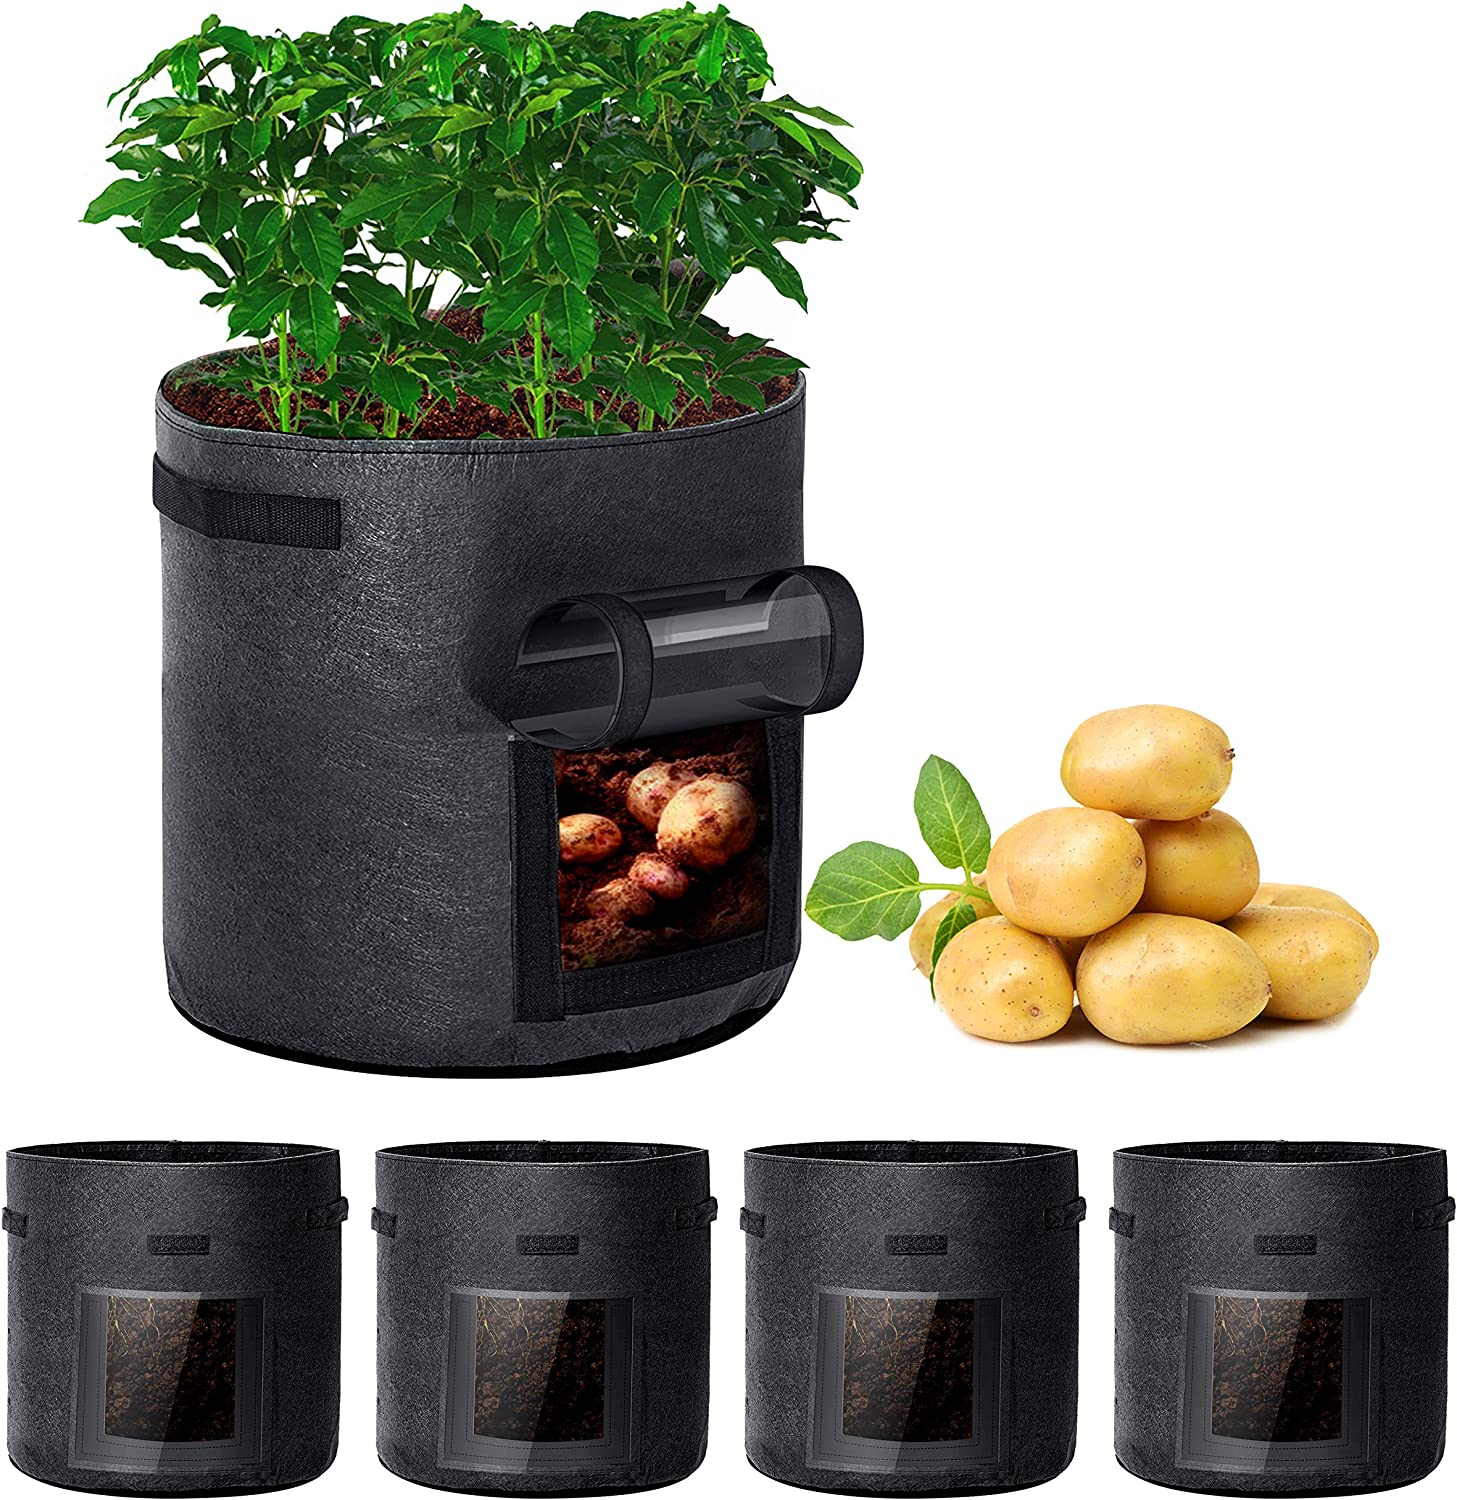 Rouffiel Potato Grow Bags, 5 Pack 7 Gallon Planting Pots with Velcro Window and Handle for Indoor & Outdoor Grow Containers for Garden, Vegetables, Tomato, Carrot, Onion, Fruit